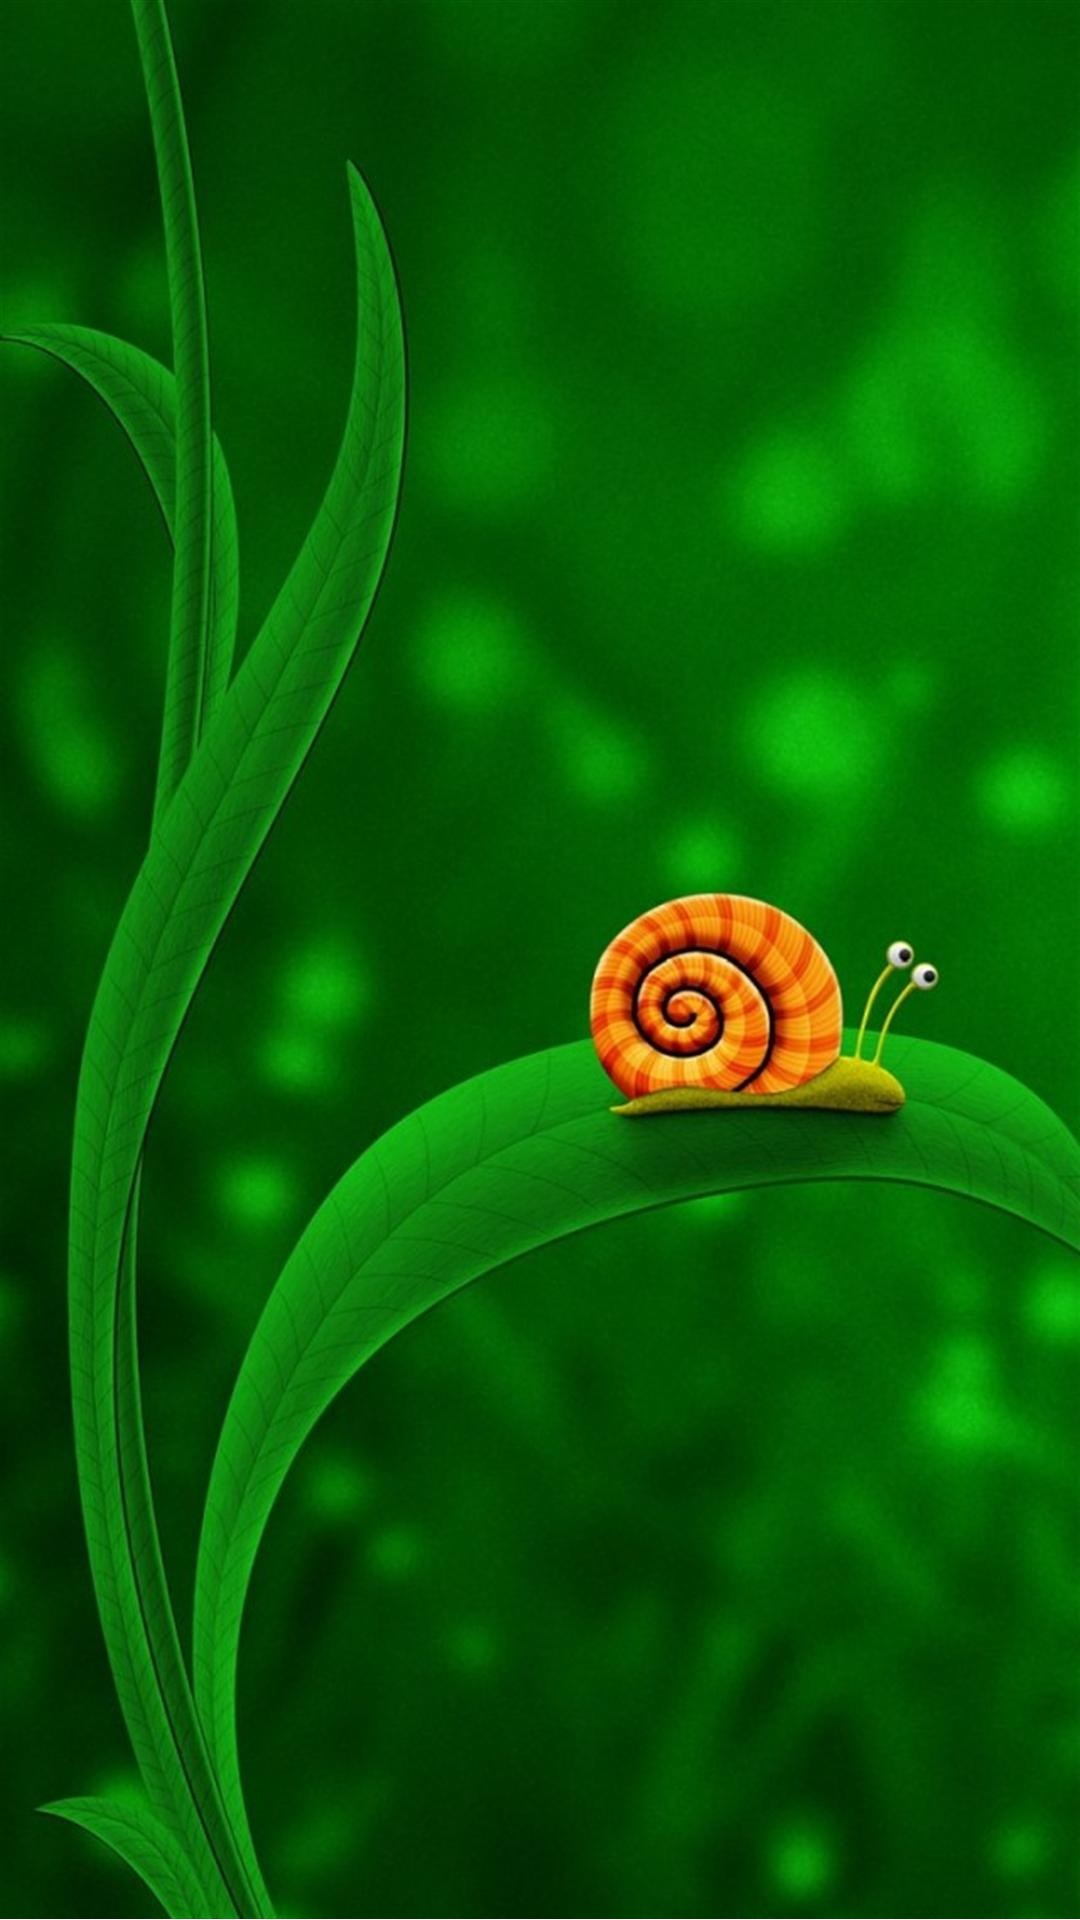 htc-one-max-wallpapers-for-mobile-hd-x-cartoon-snail-pic-mch074204